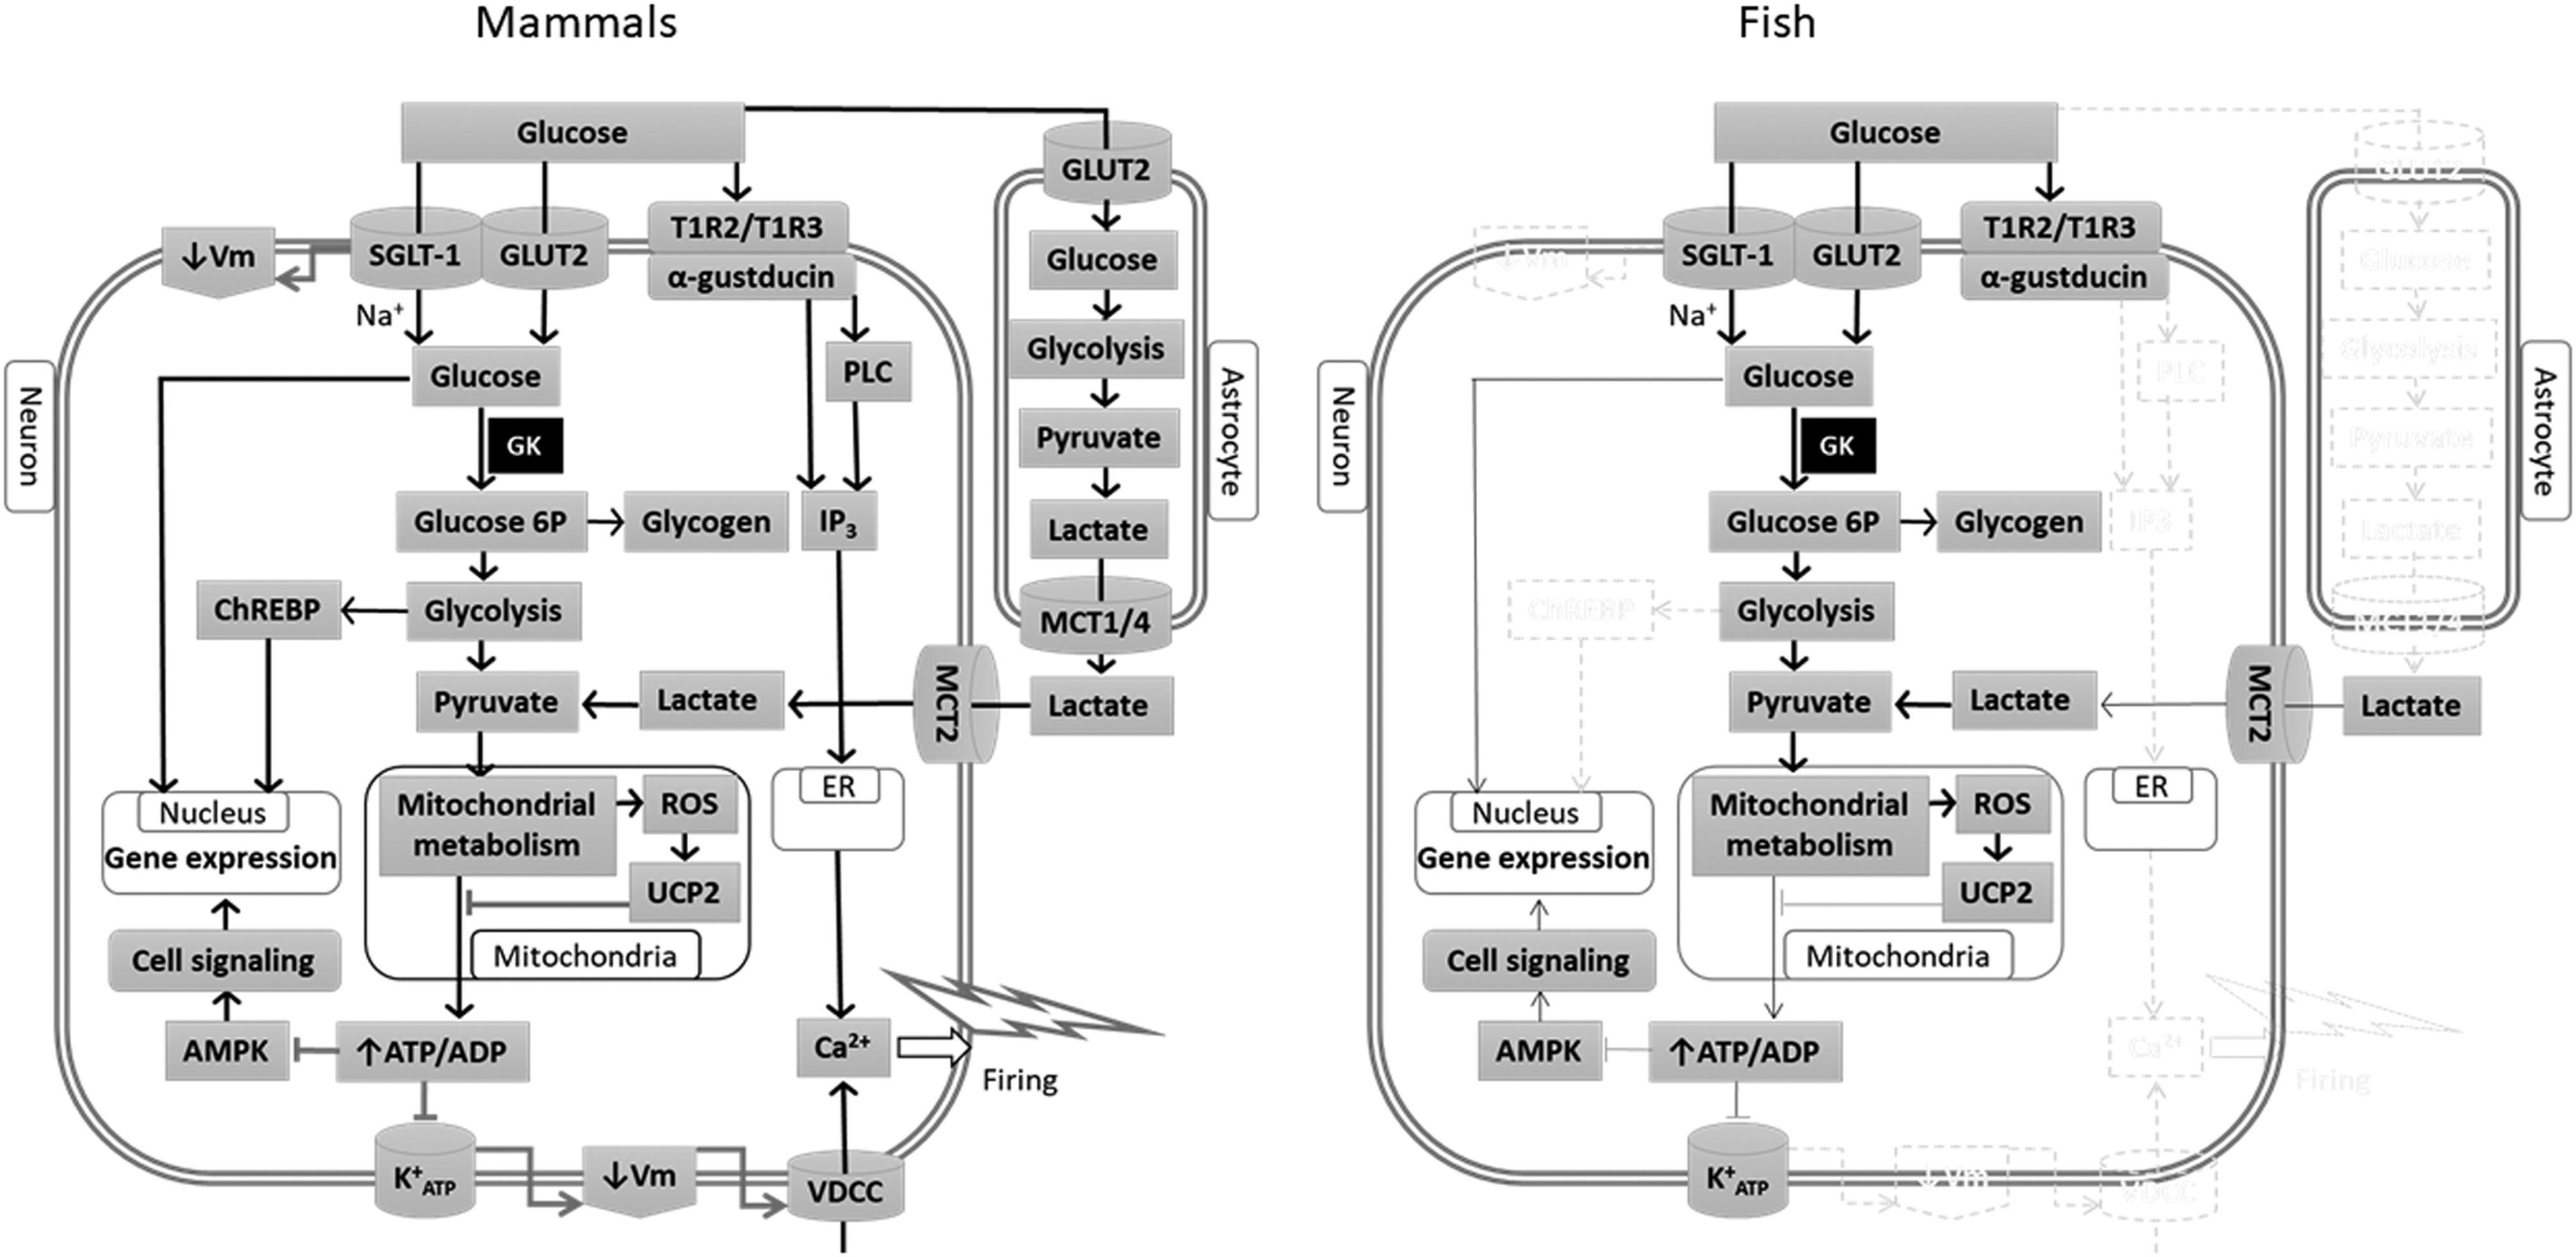 Central Regulation Of Food Intake In Fish An Evolutionary